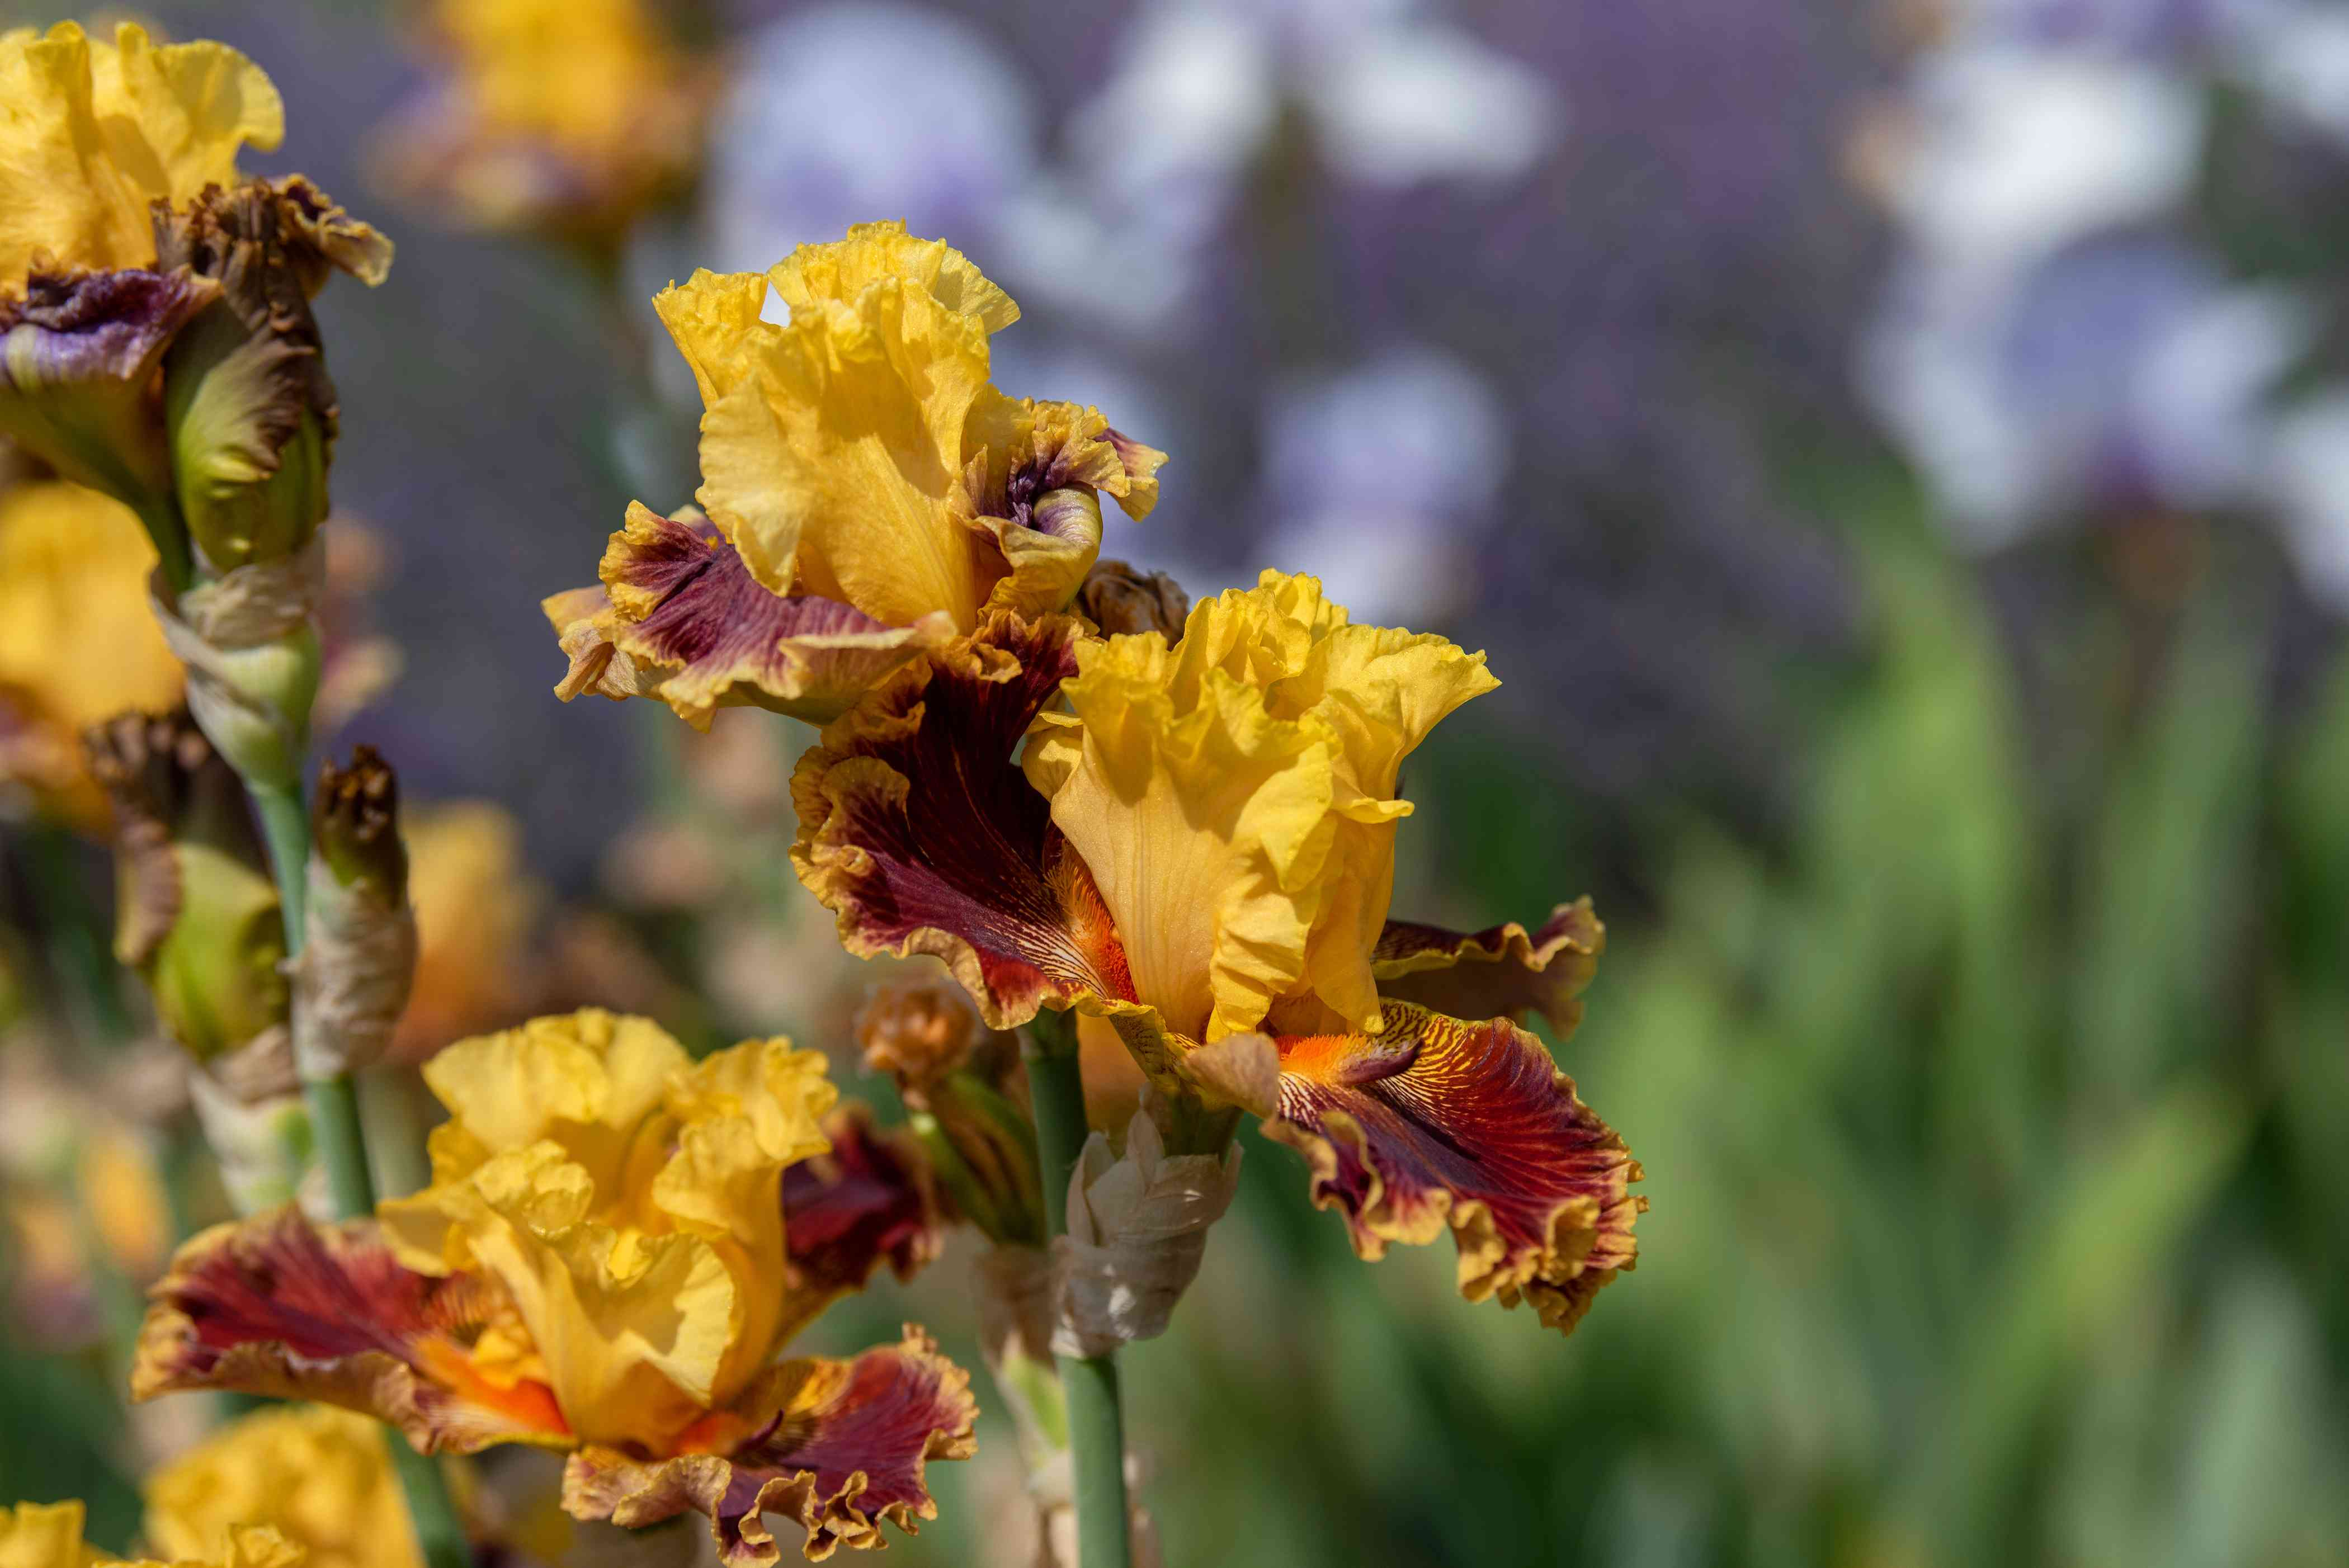 Iris with yellow standard petals and red and orange fall petals on flower stalk closeup